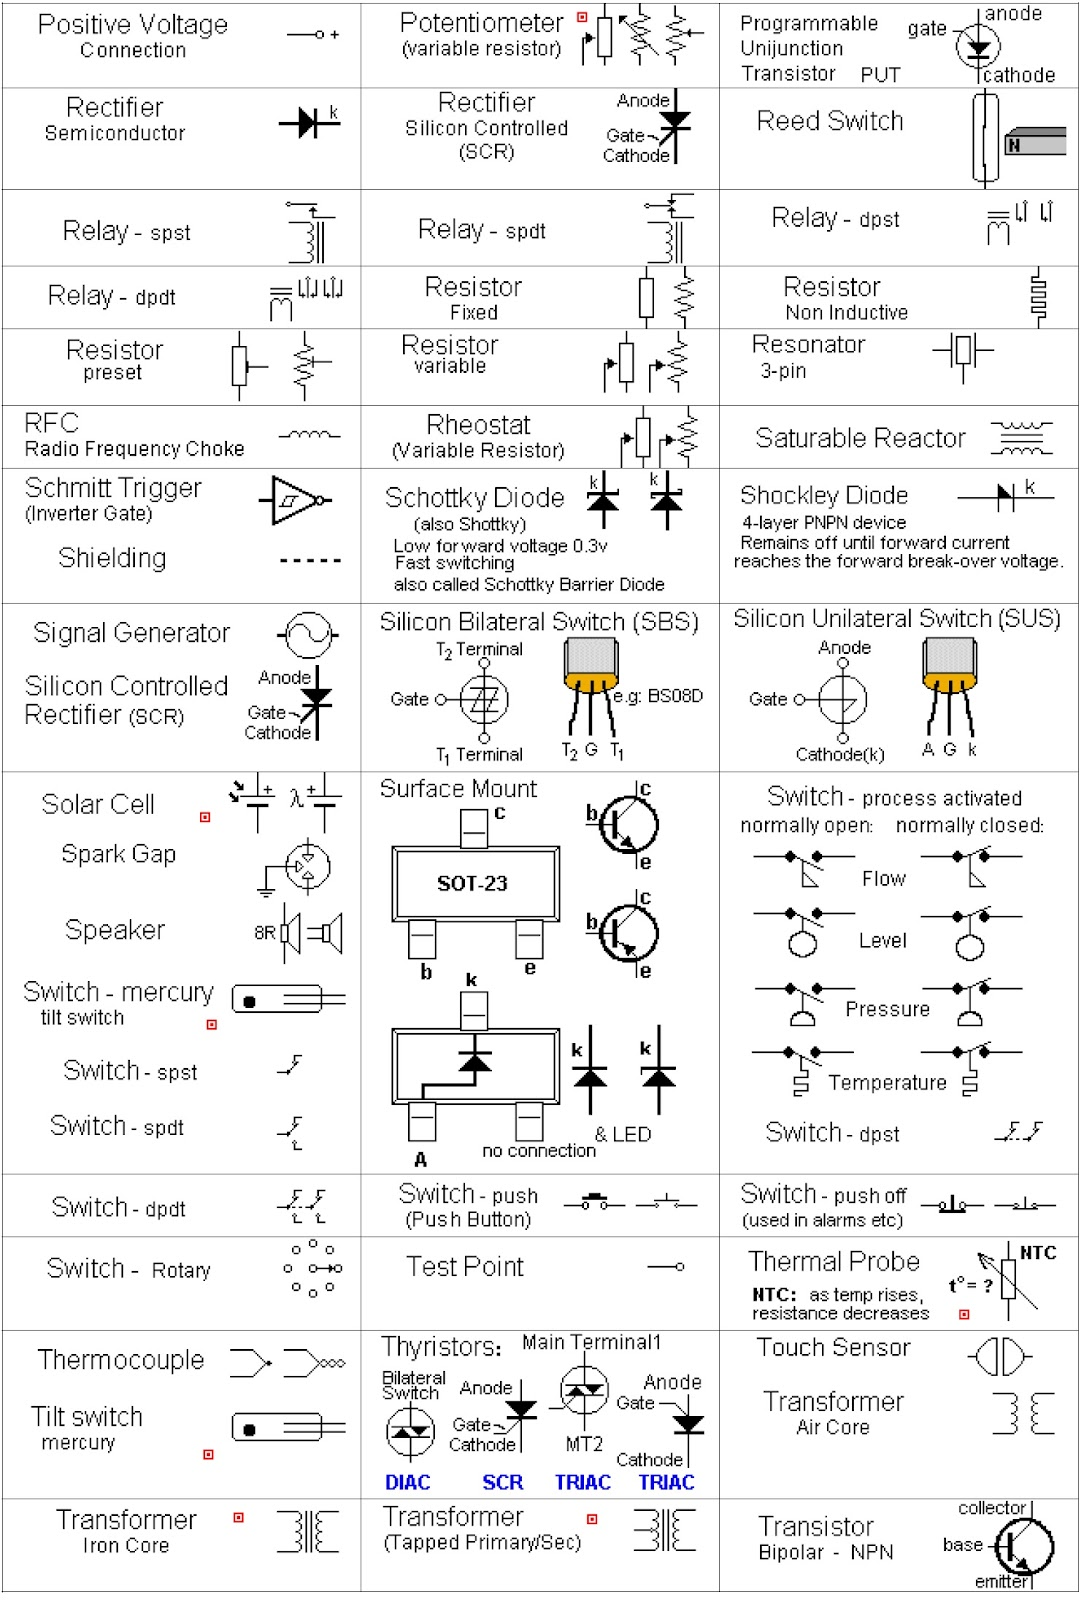 Pid Instrument Symbols as well Atv 109 Wiring Diagram also Whats The Purpose Of The Diodes In This Circuit together with Electrical Circuit Symbols further Auto Repair Wiring Diagrams. on automotive wiring diagram symbols